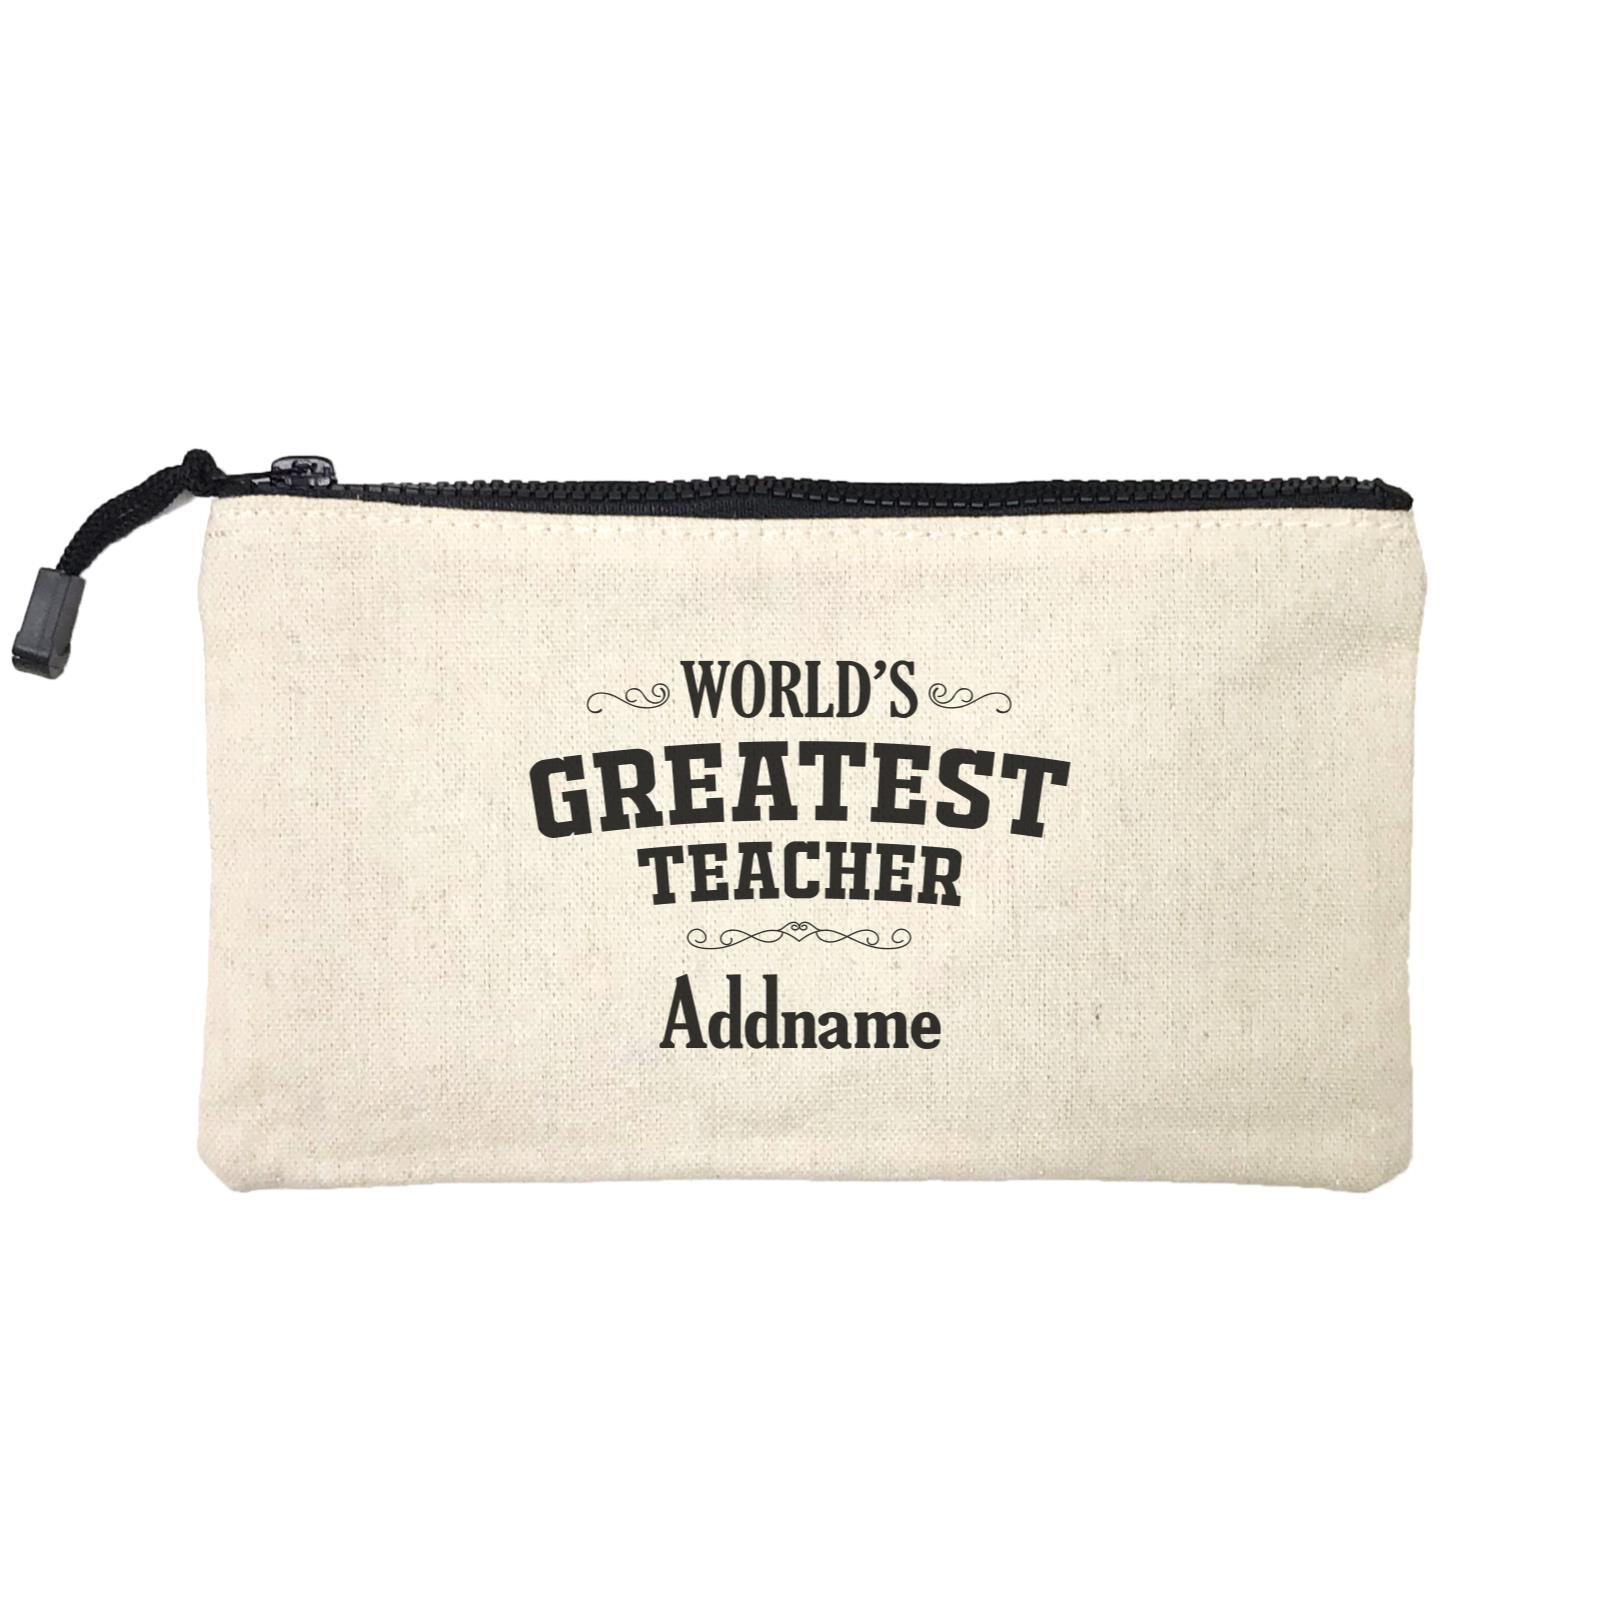 Great Teachers World's Greatest Teacher Addname Mini Accessories Stationery Pouch